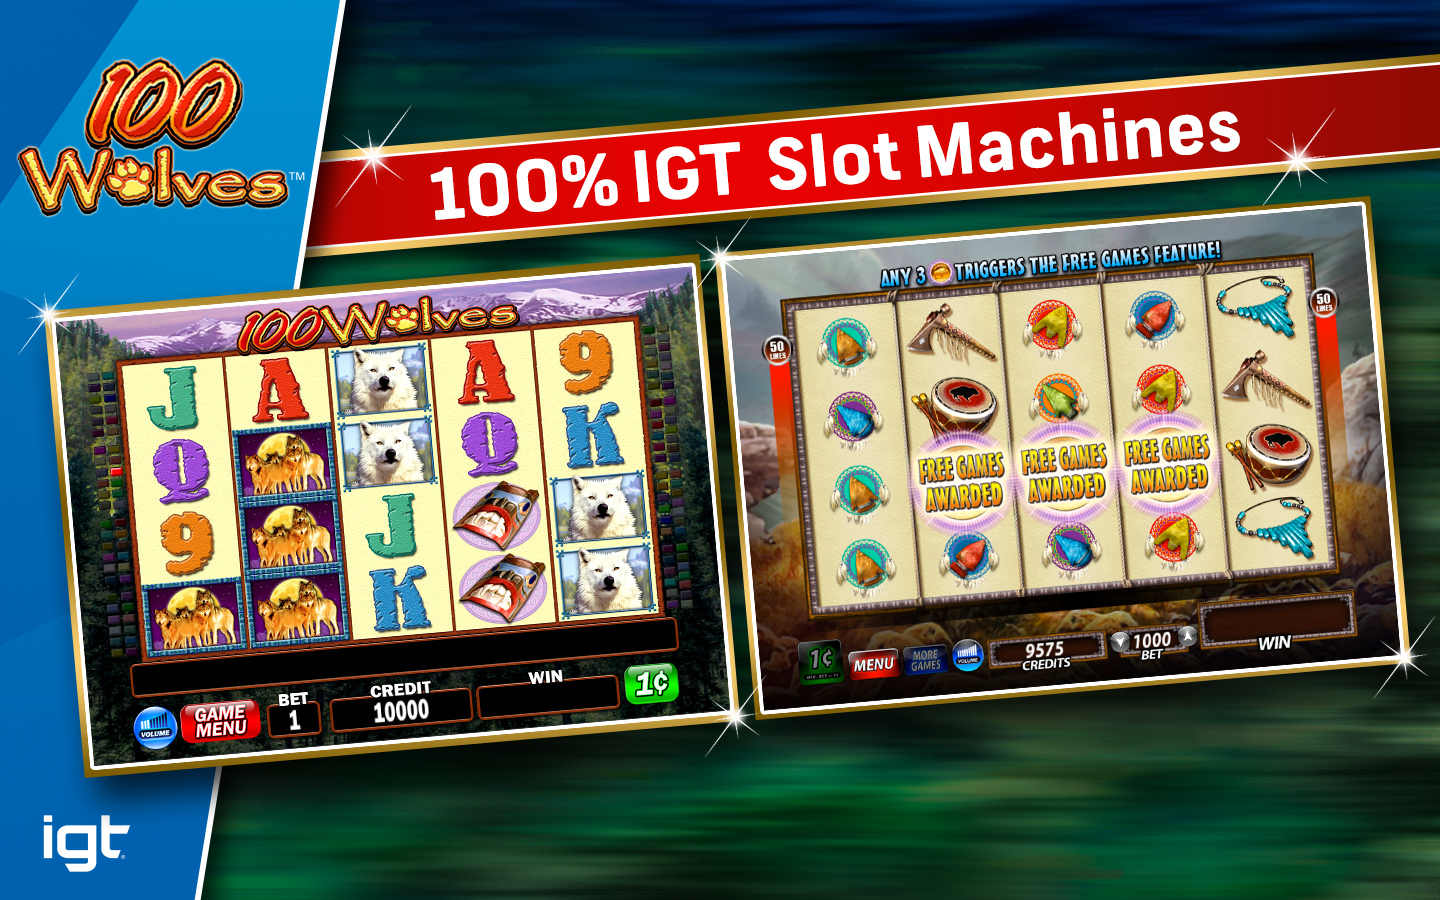 Howling wolves slots